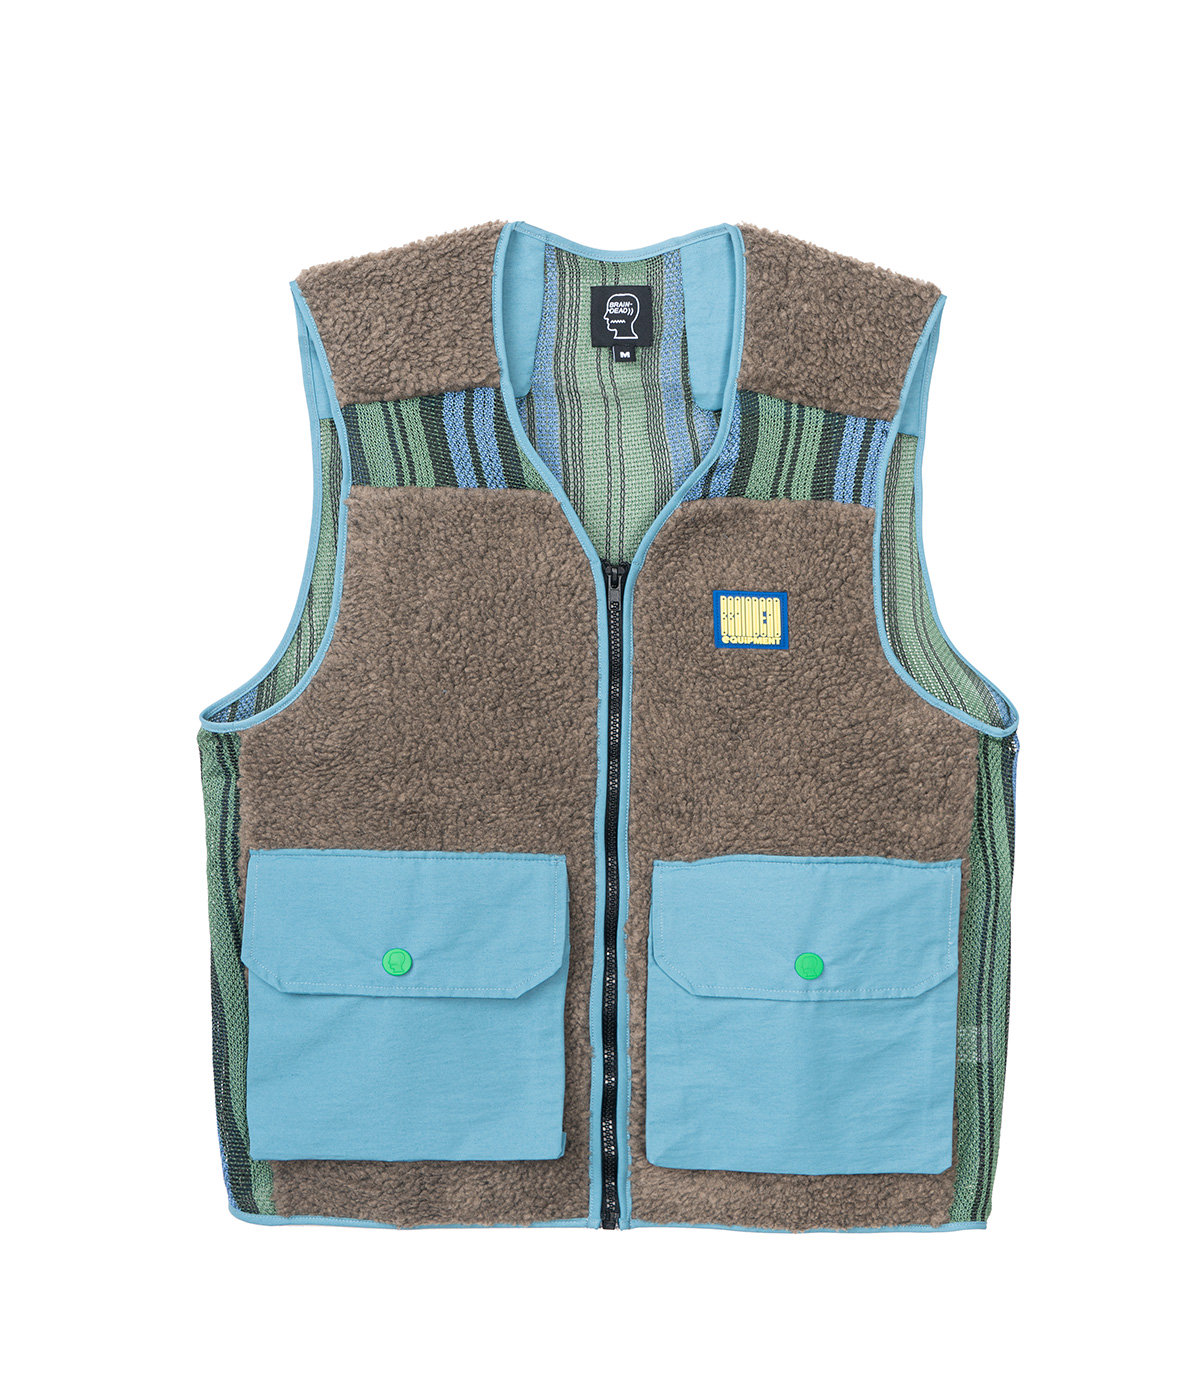 SHERPA TACTICAL VEST